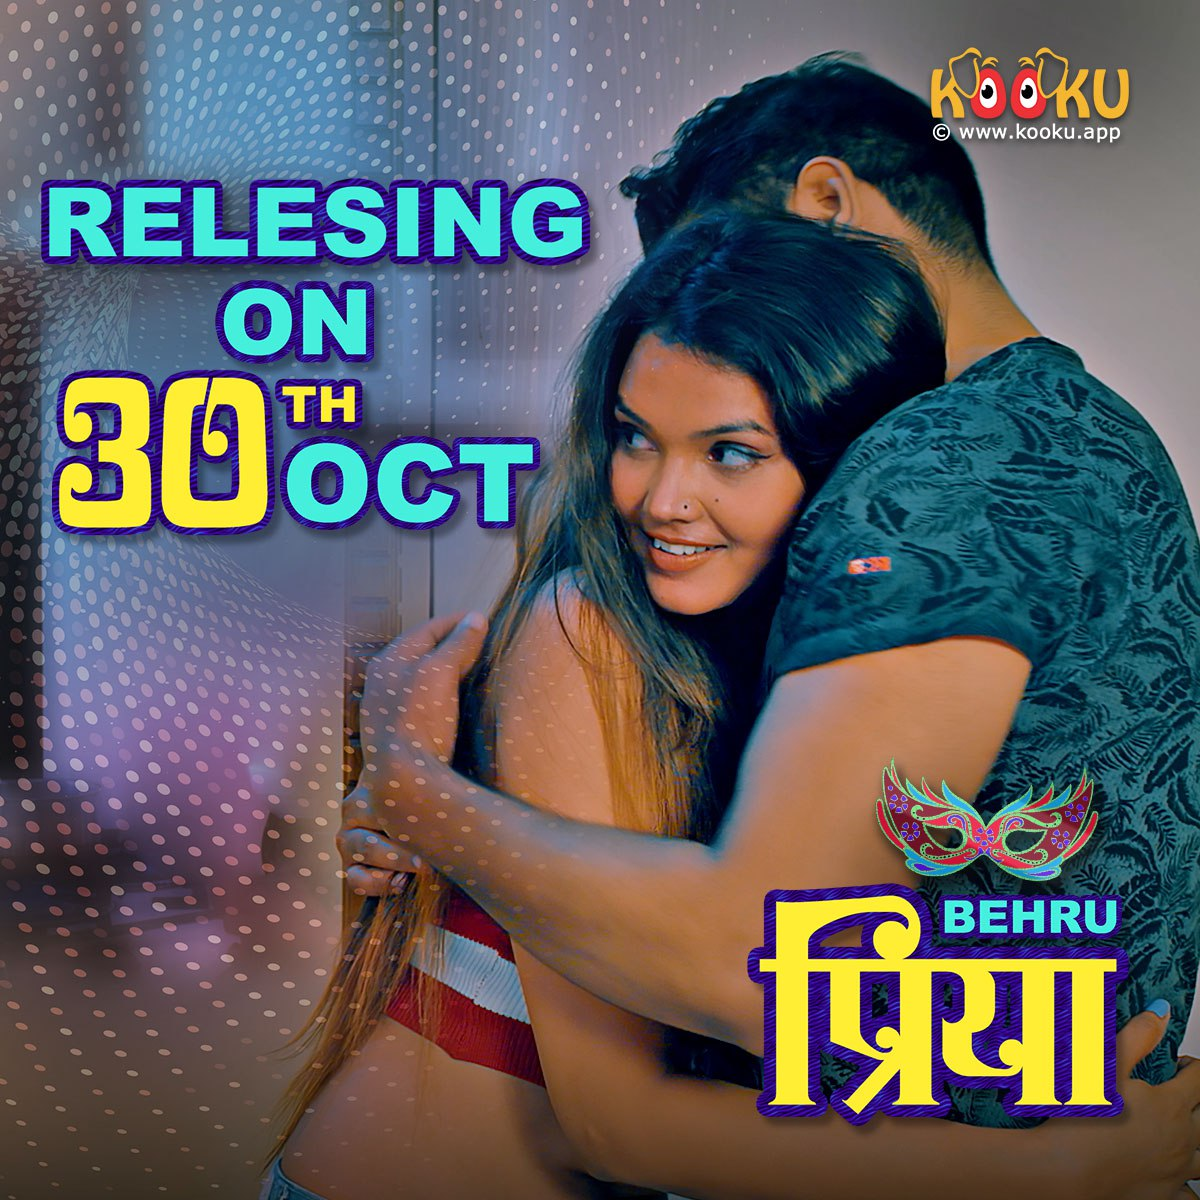 Behrupriya 2020 S01 Hindi Kooku App Web Series Official Trailer 1080p HDRip 34MB x264 AAC